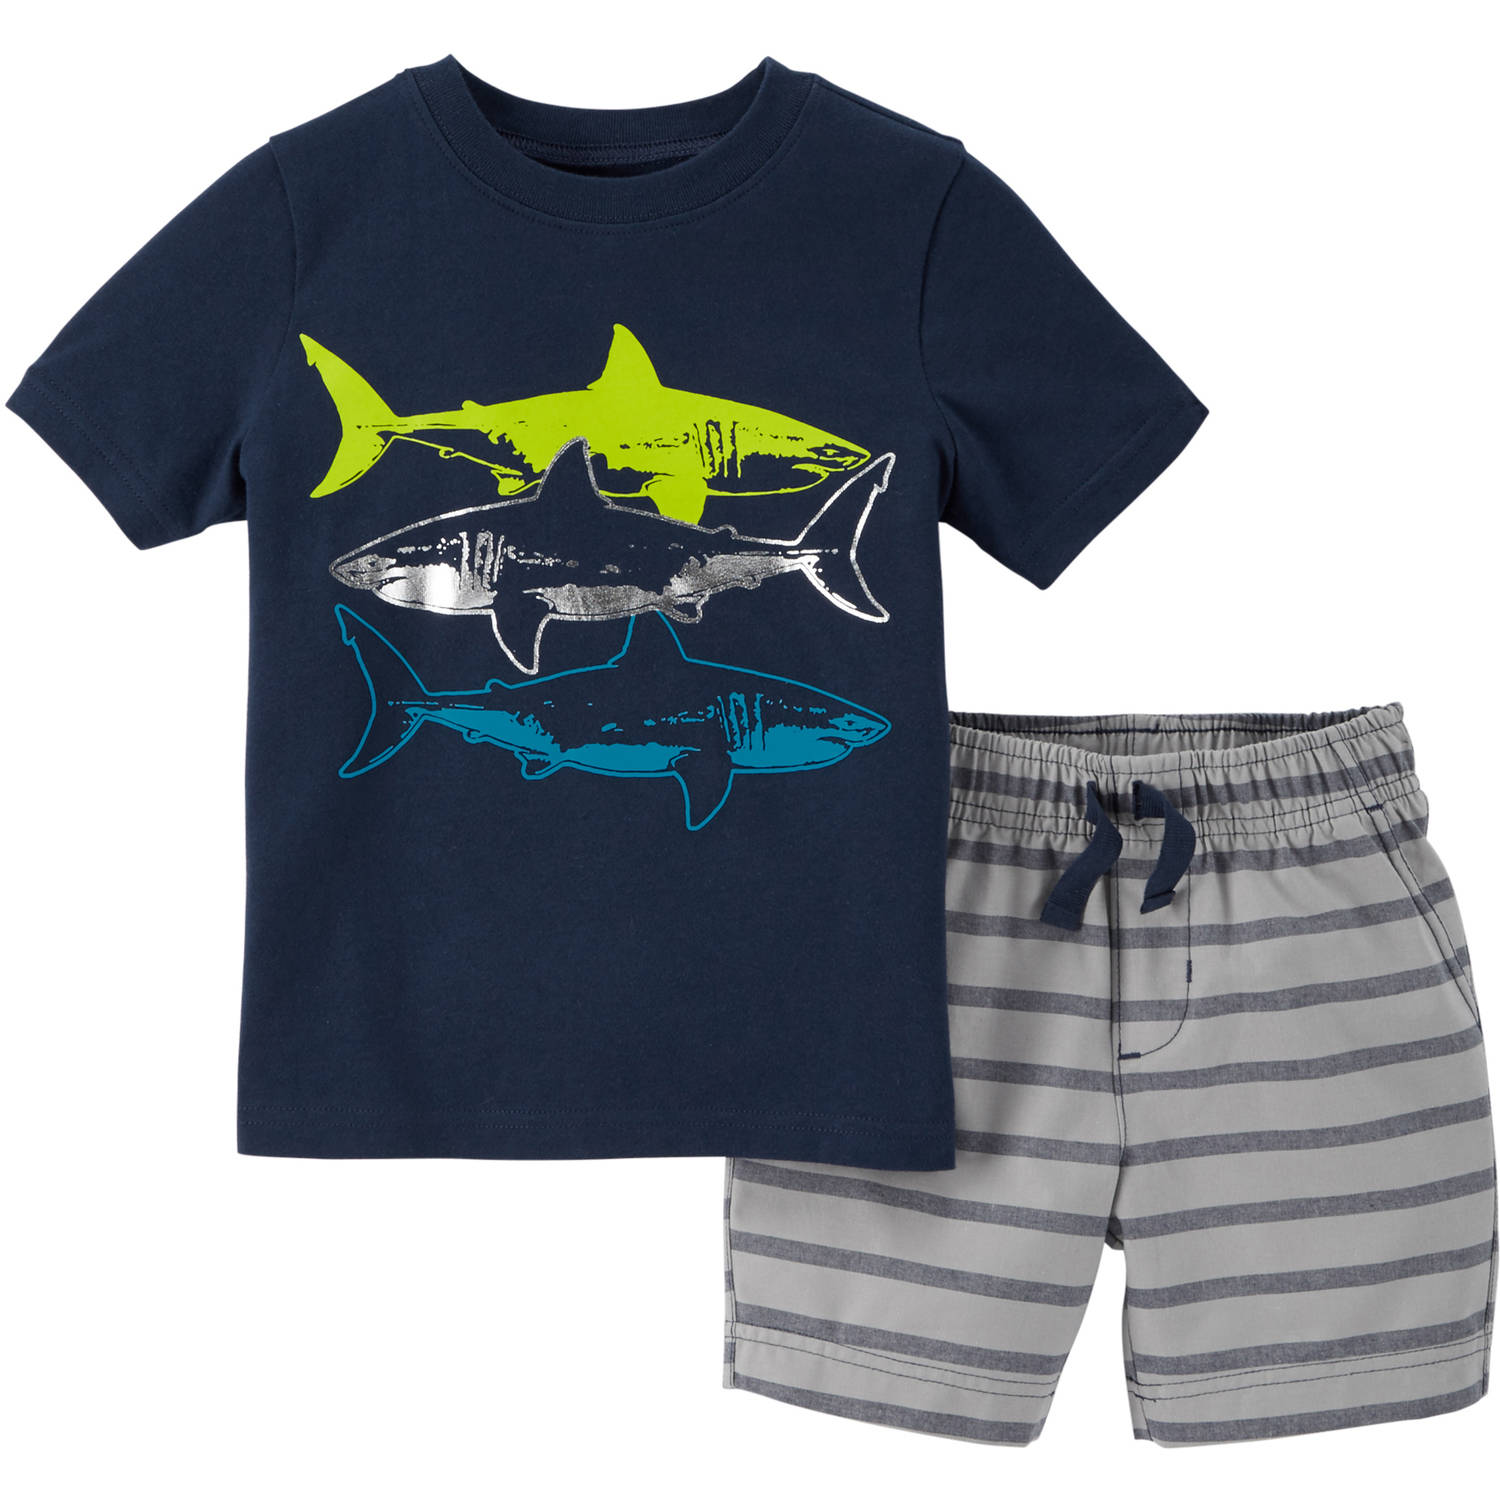 Child of Mine by Carter's Baby Toddler Boy Graphic Shirt and Short Outfit Set 2 Pieces